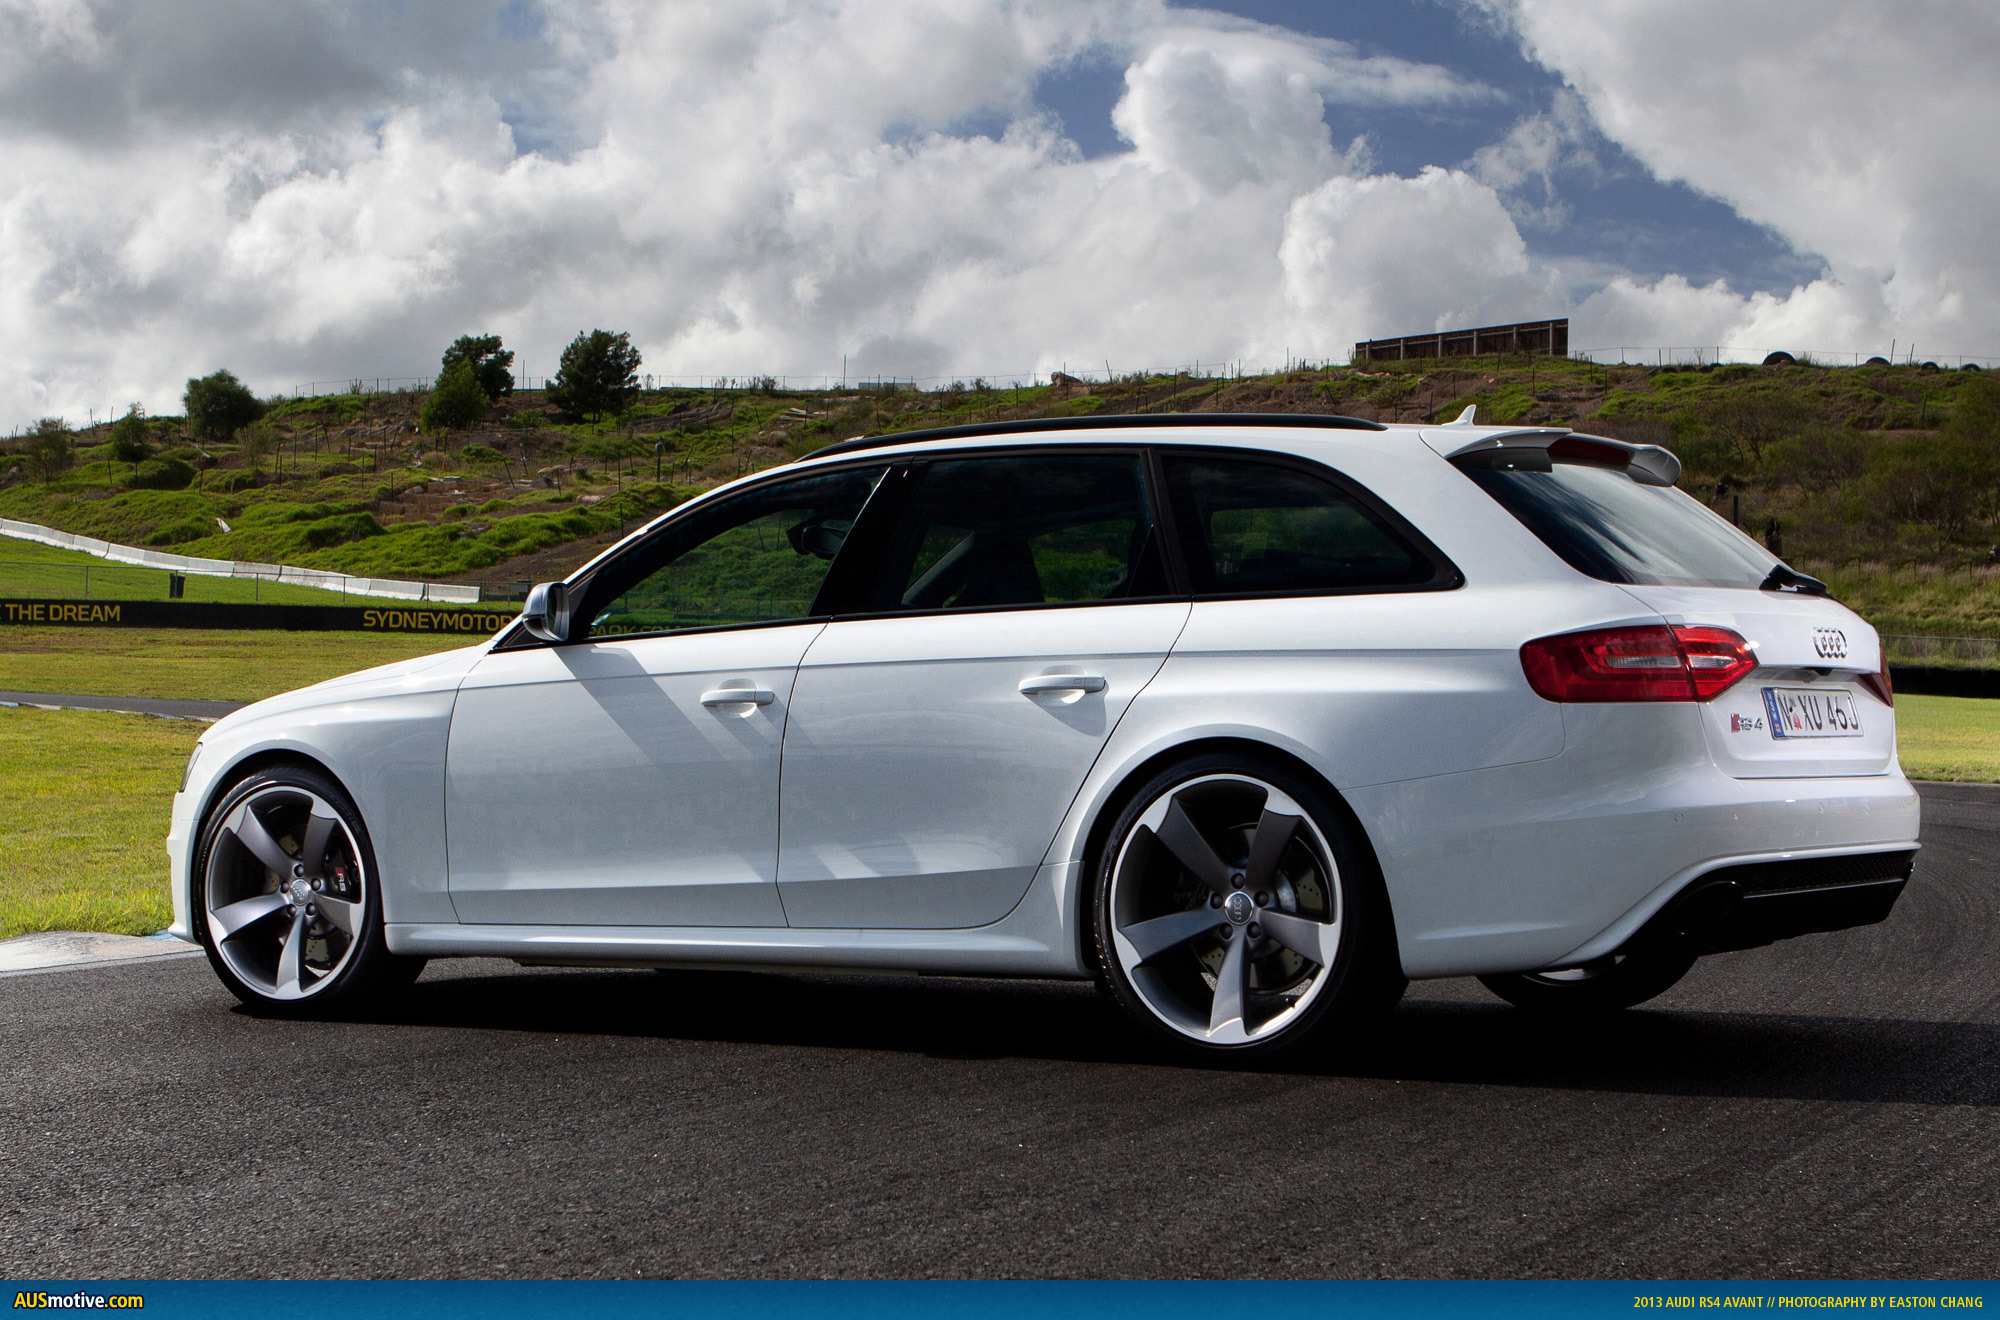 AUSmotive.com » 2013 Audi RS4 Avant – Australian pricing ...